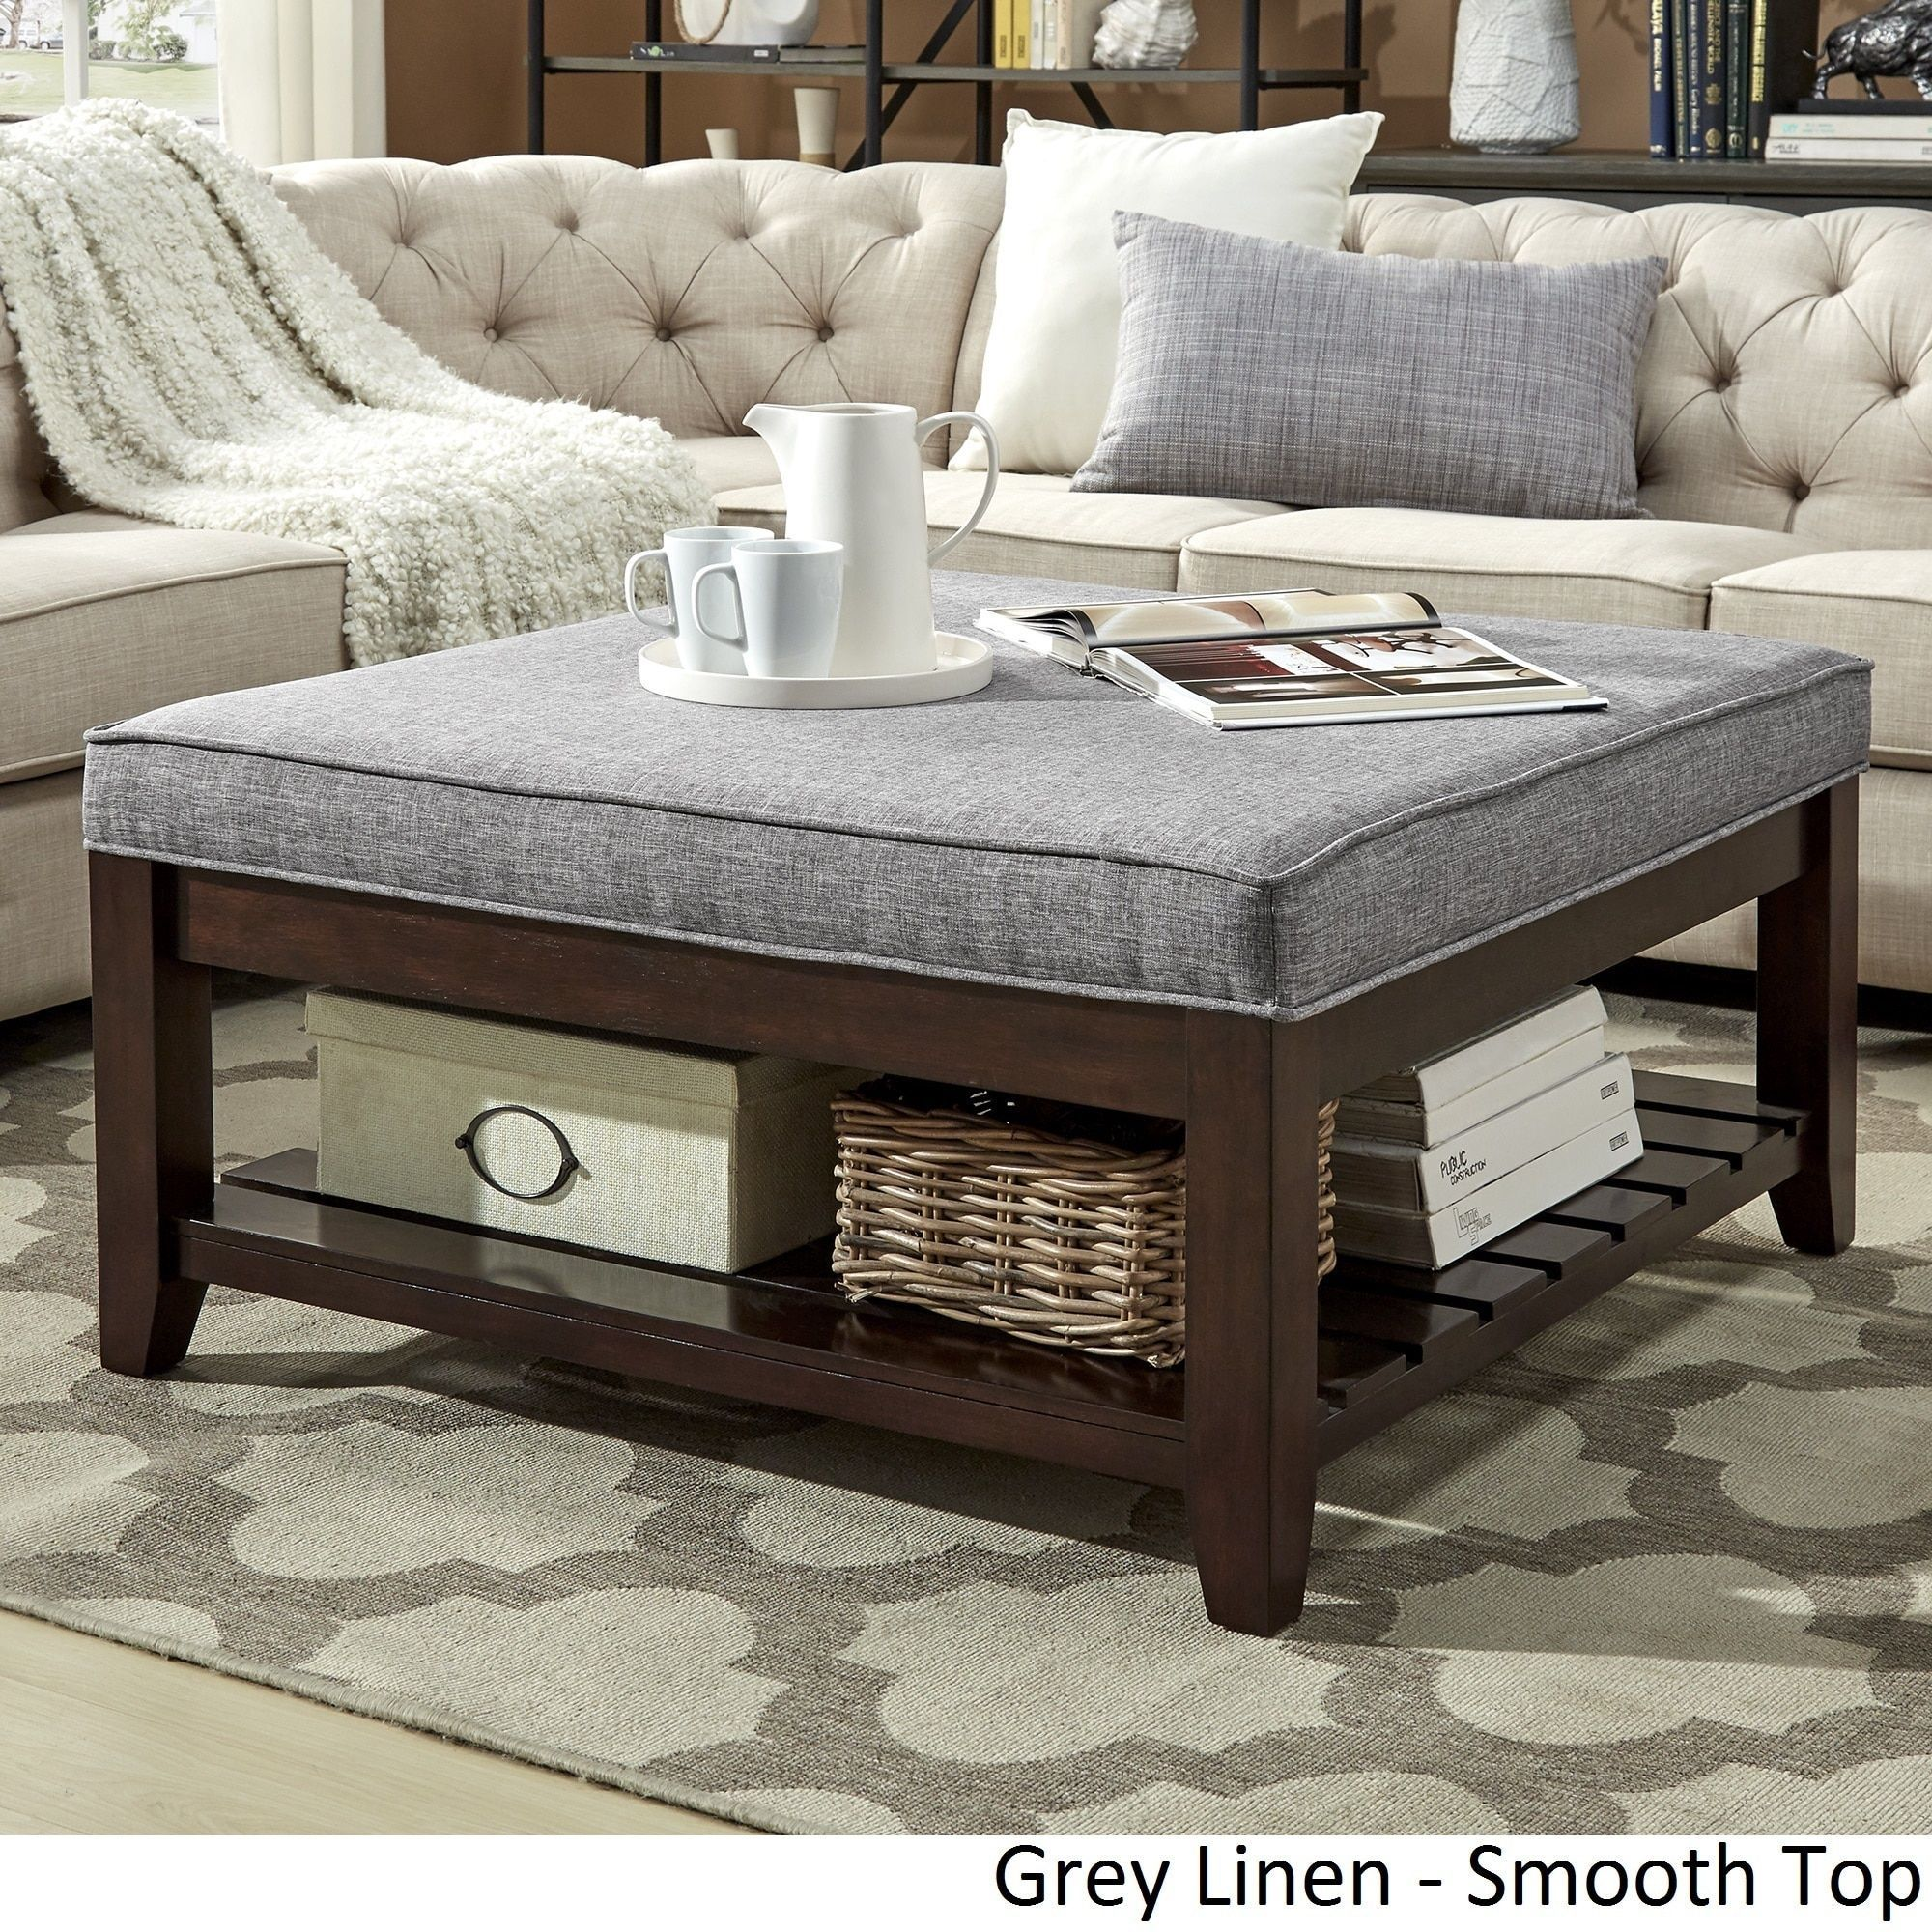 Lennon Espresso Planked Storage Ottoman Coffee Table By Inspire Q Classic Large Ottoman Coffee